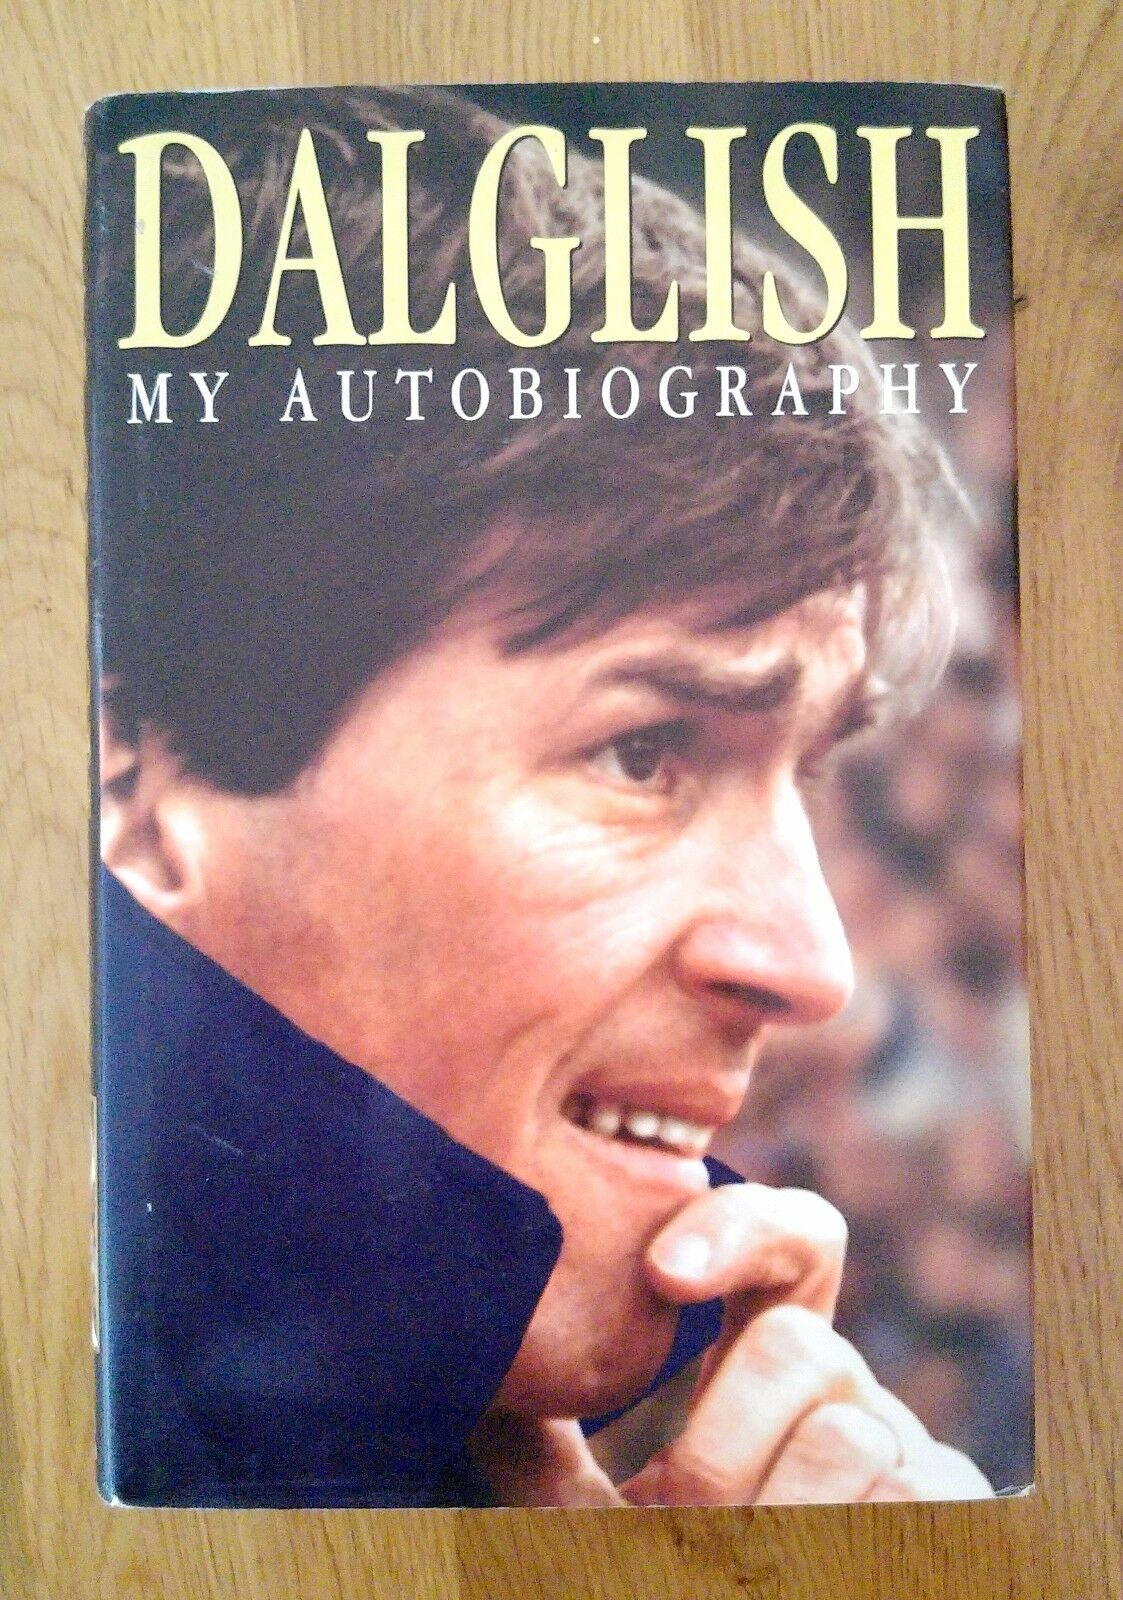 Hand Signed Autobiography  Kenny Dalglish 'My Autobiography' - Liverpool FC